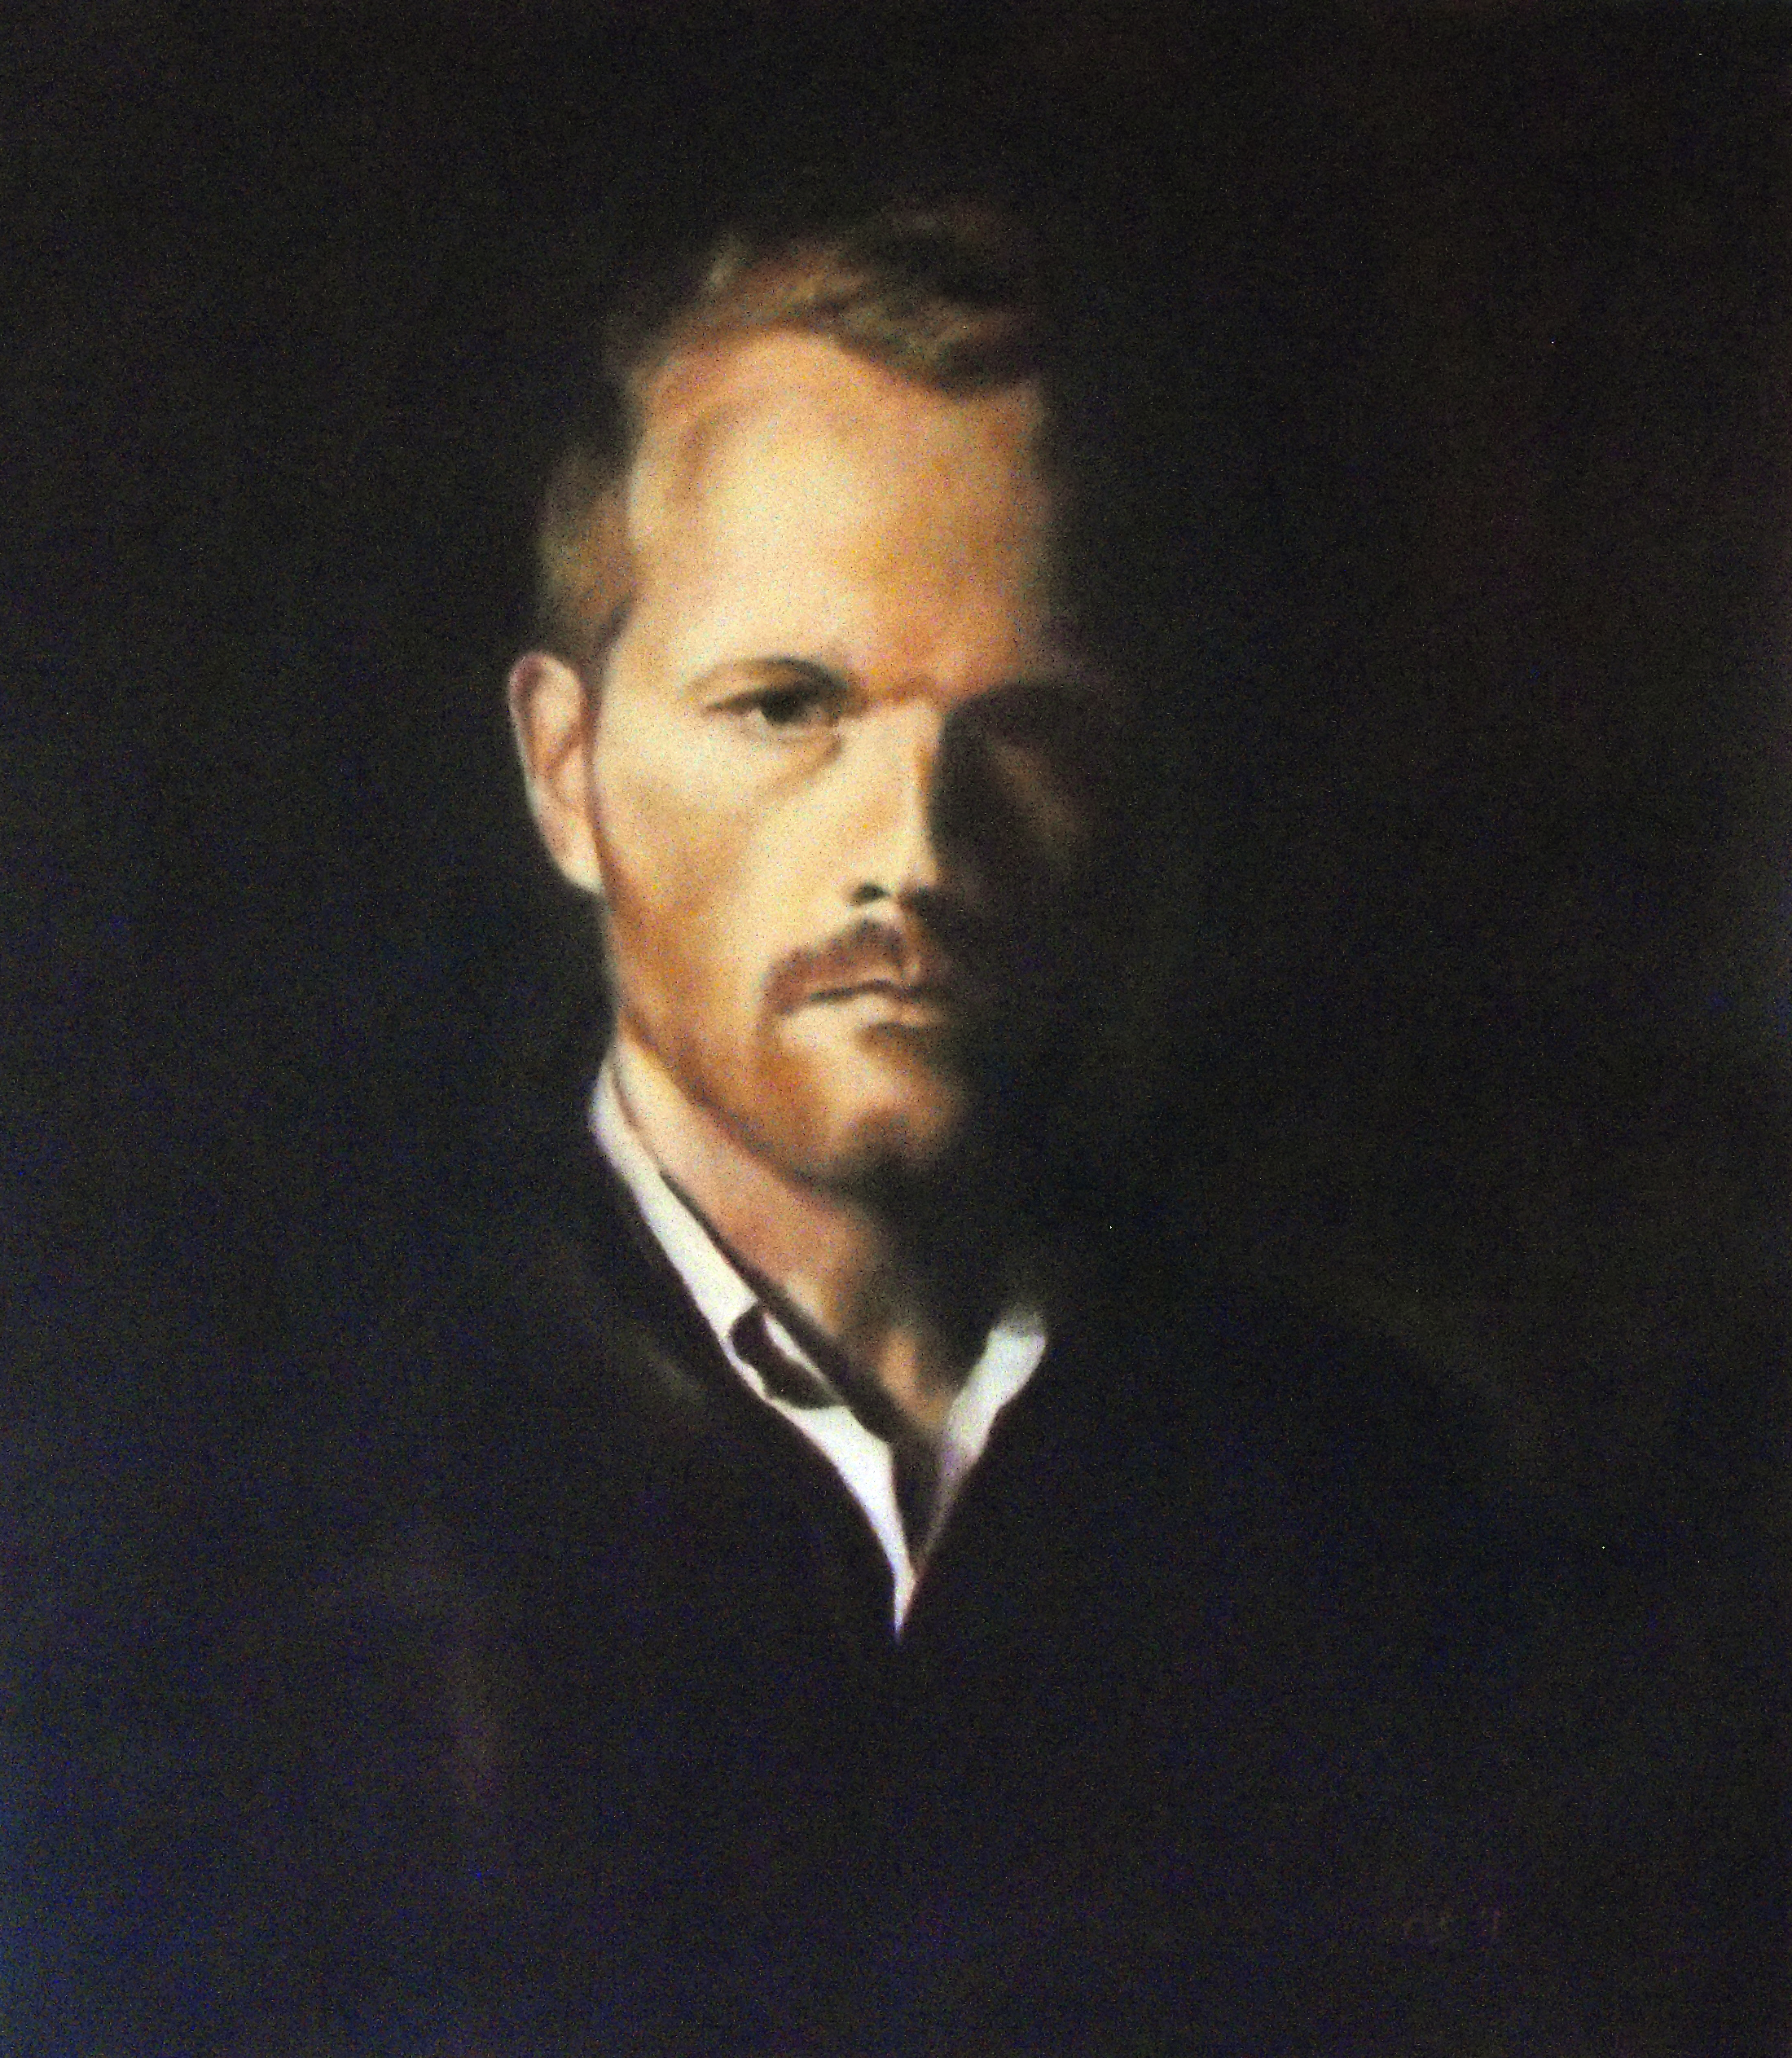 """Fredrik"", Oil on canvas, 61x70, 2011"